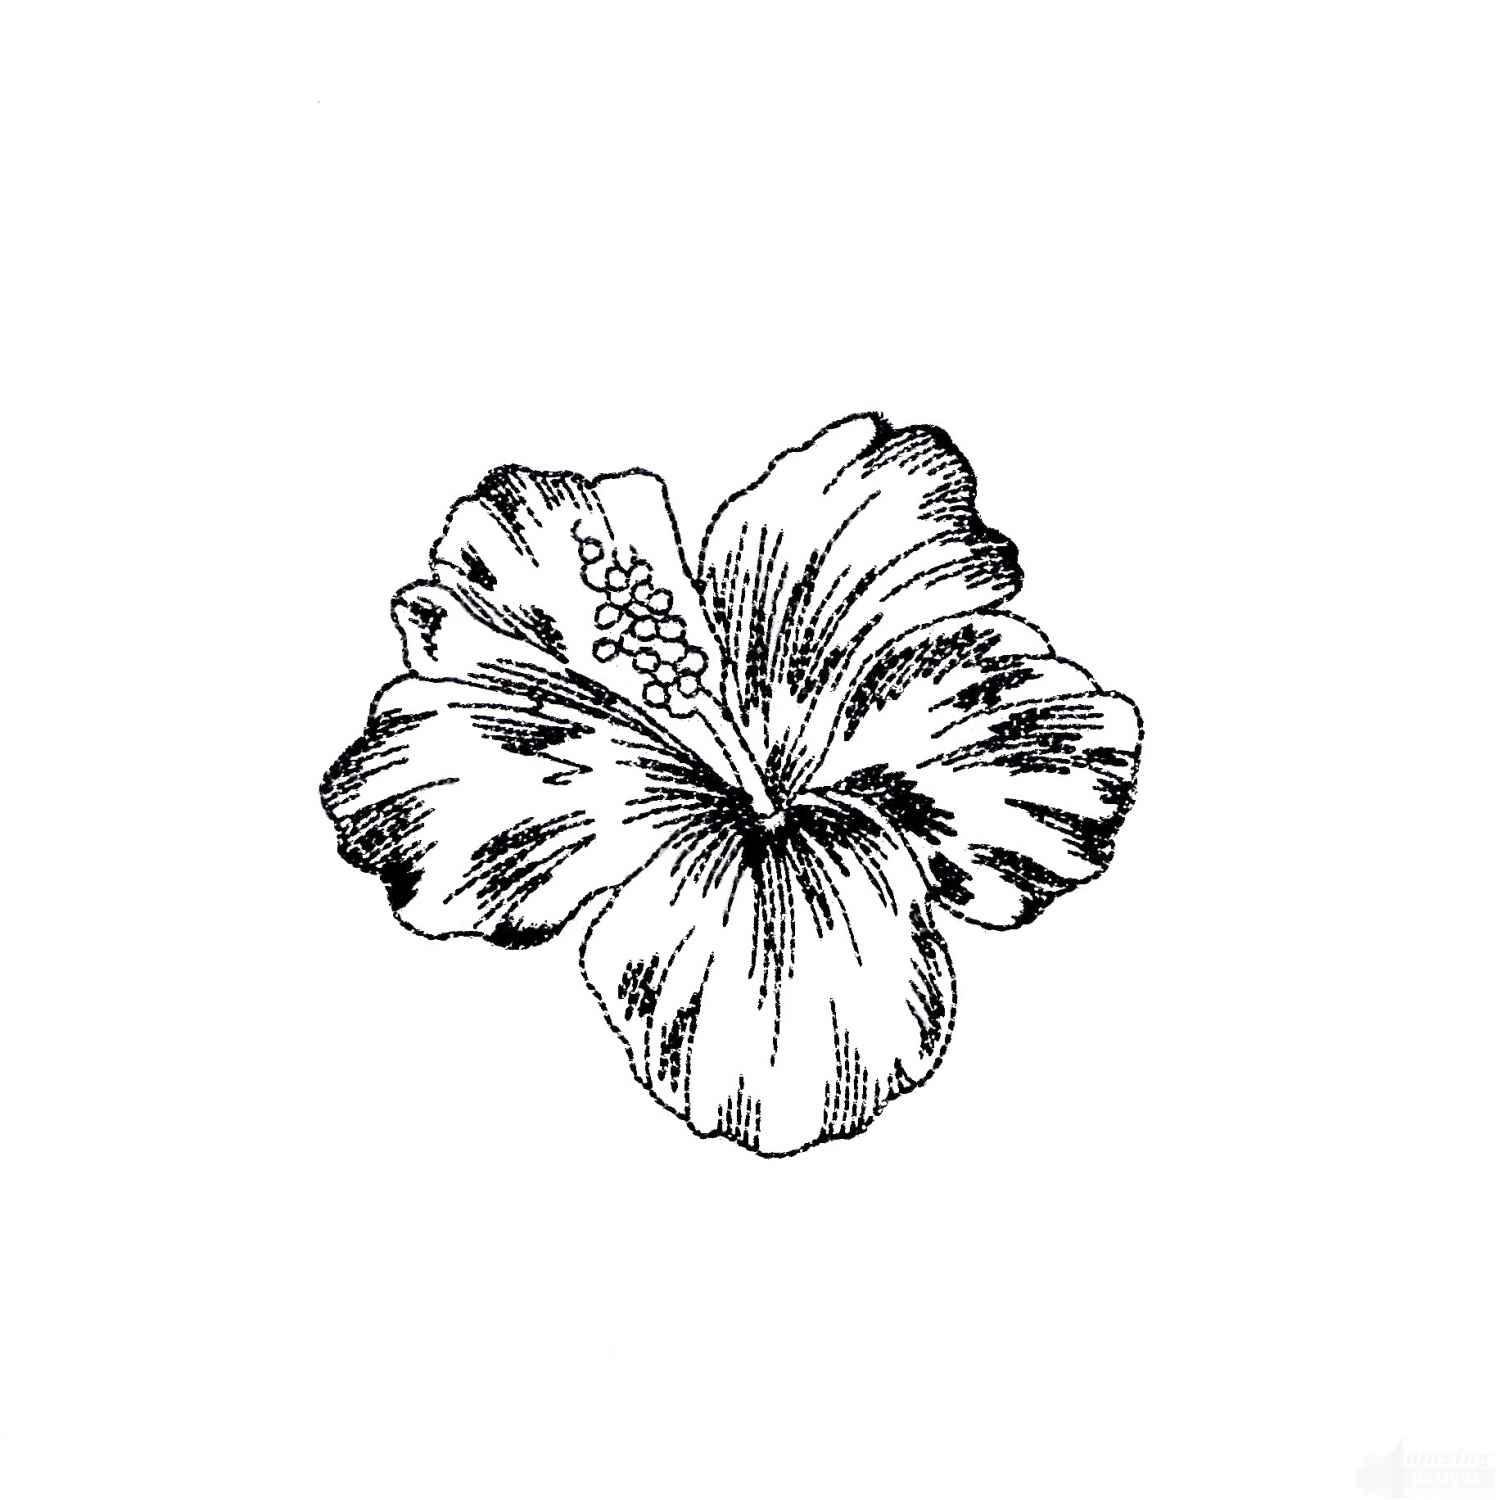 1500x1500 Tropical Flower Sketch Designs, Tropical Plant Drawings